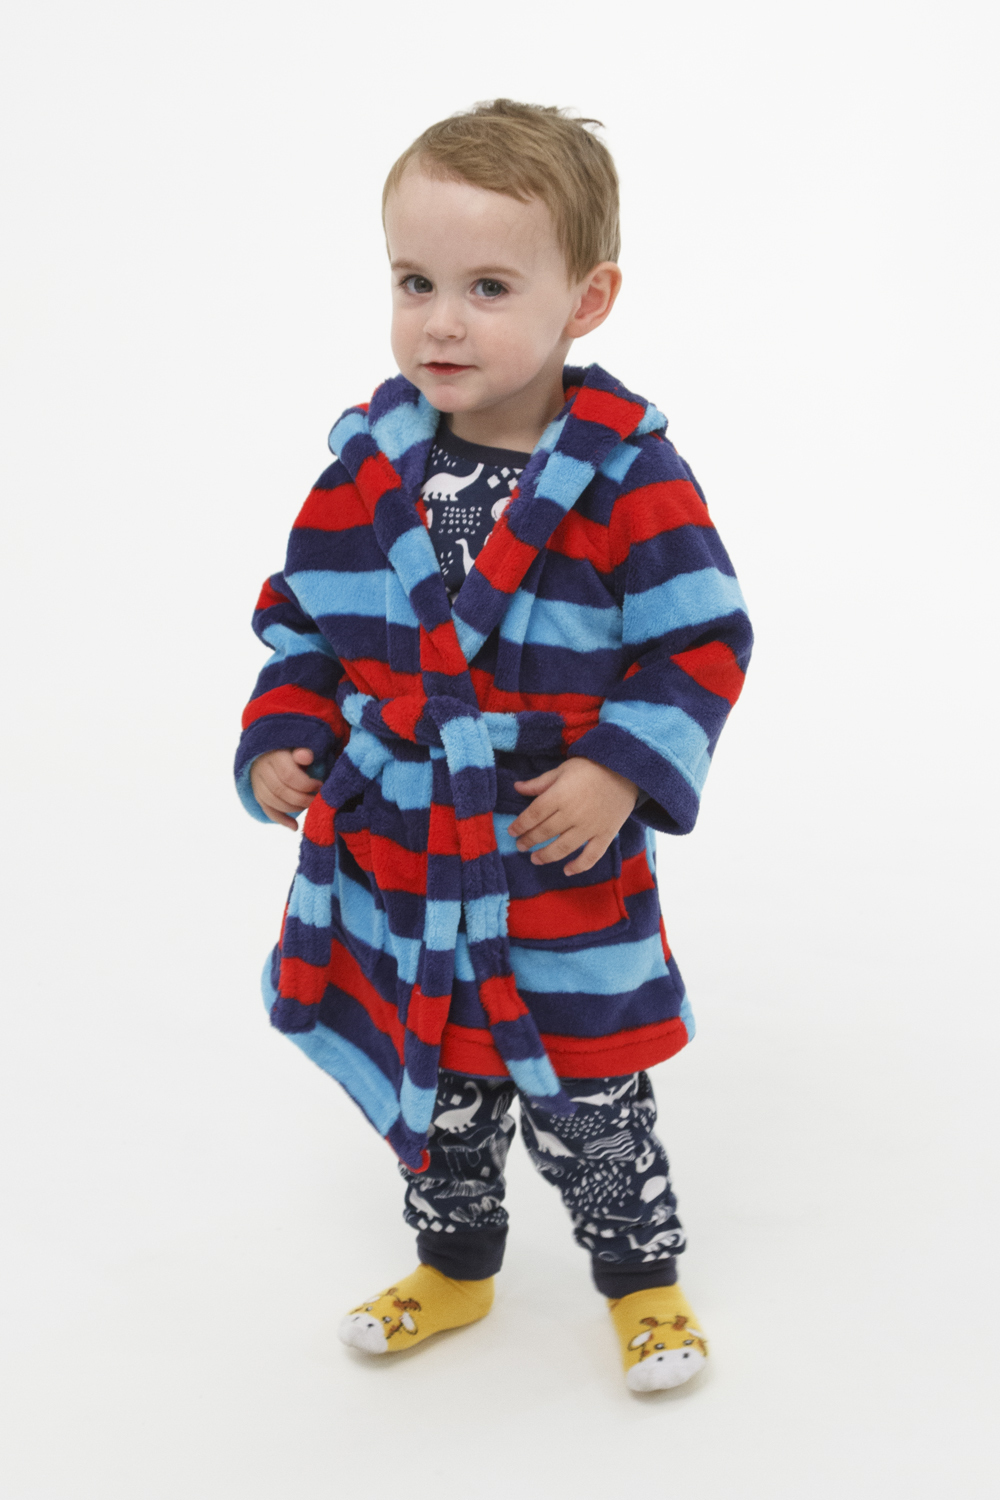 Boys Coral Fleece Hooded Dressing Gown Robe (Sz 0-2) Blue Red Stripes